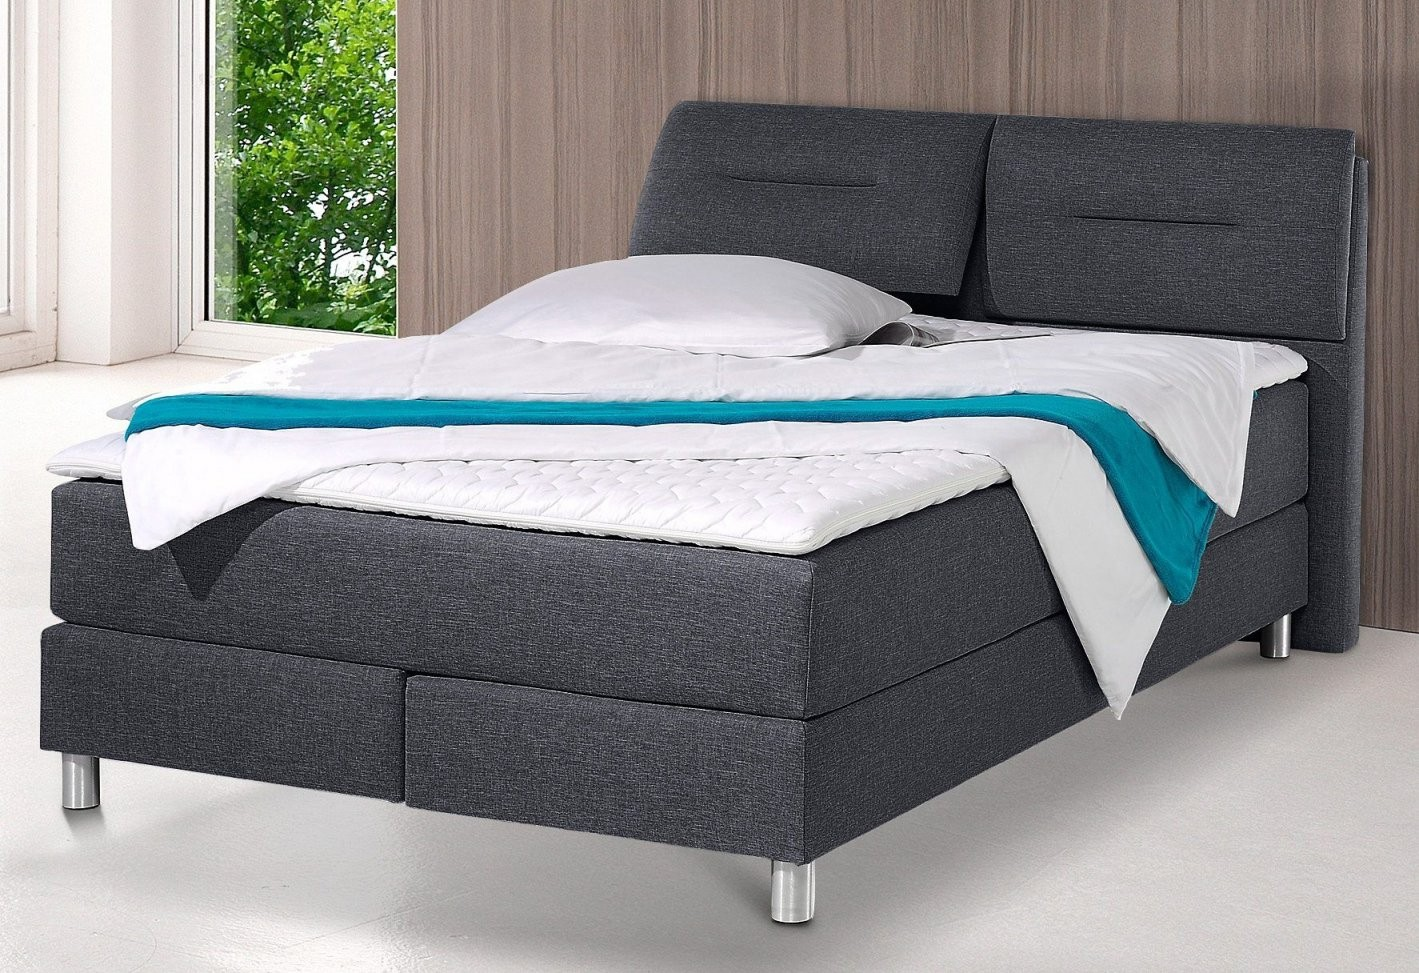 Pinladendirekt On Betten  Bed Furniture von Westfalia Polsterbetten Boxspringbett Inkl Kaltschaum Topper Bild